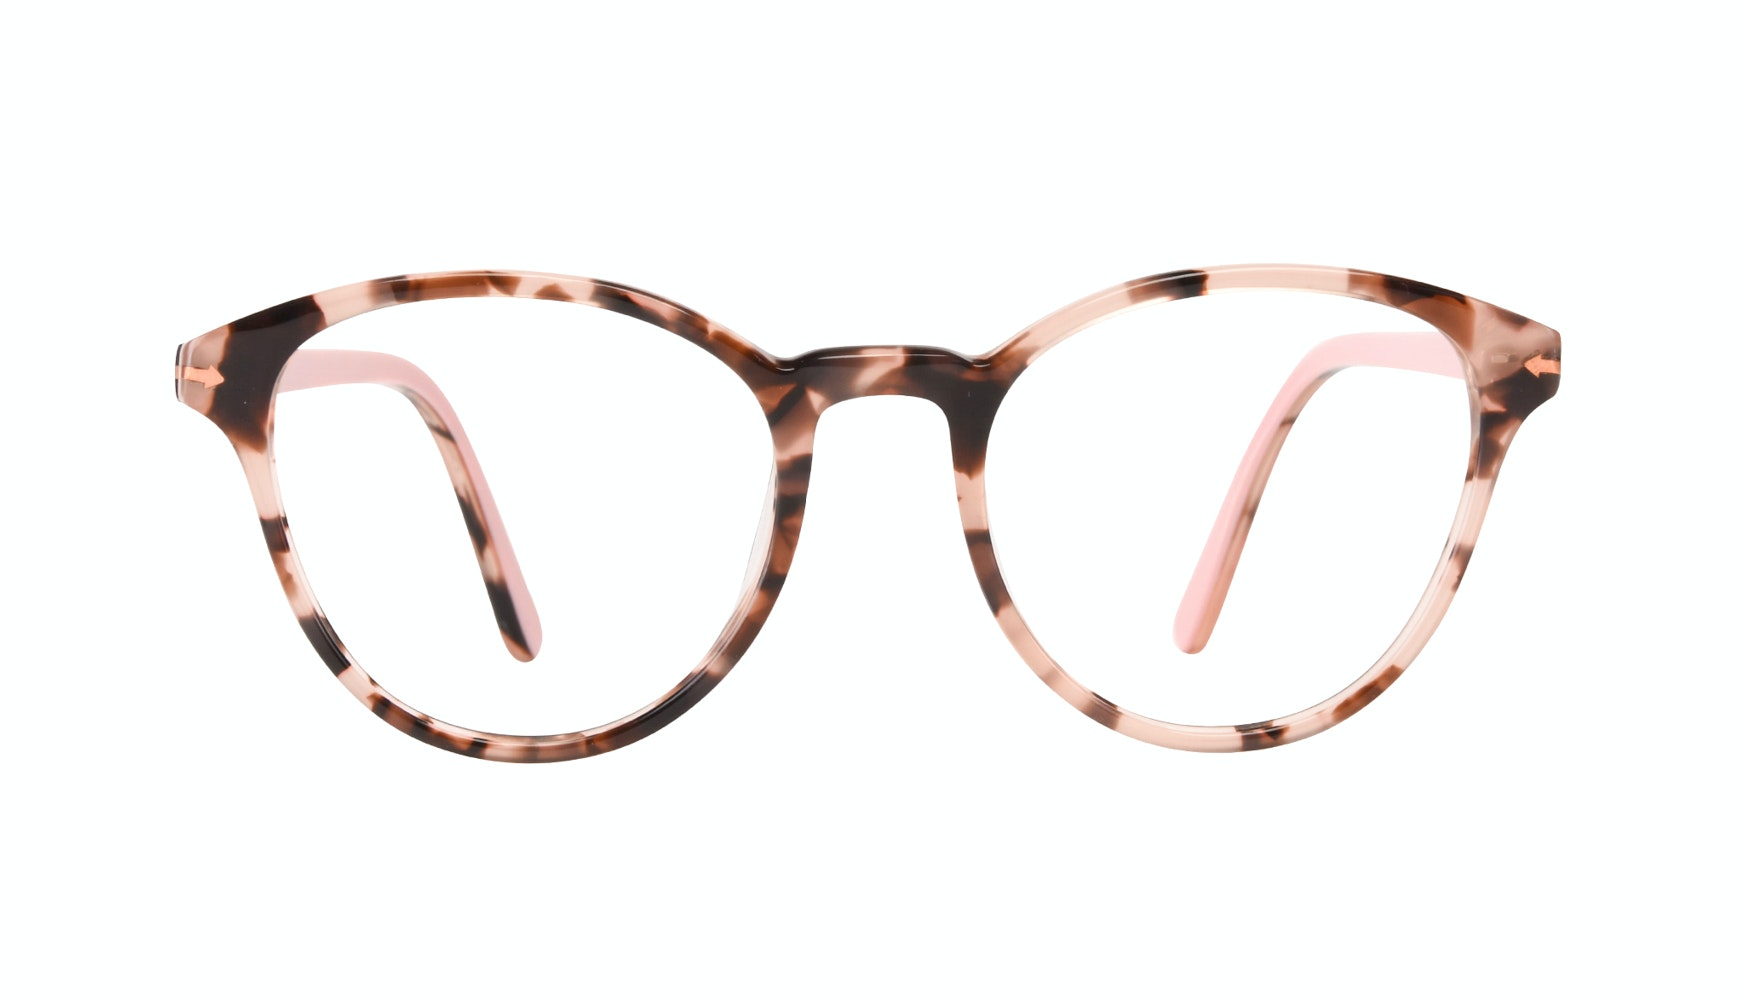 Affordable Fashion Glasses Round Eyeglasses Women London Wisteria